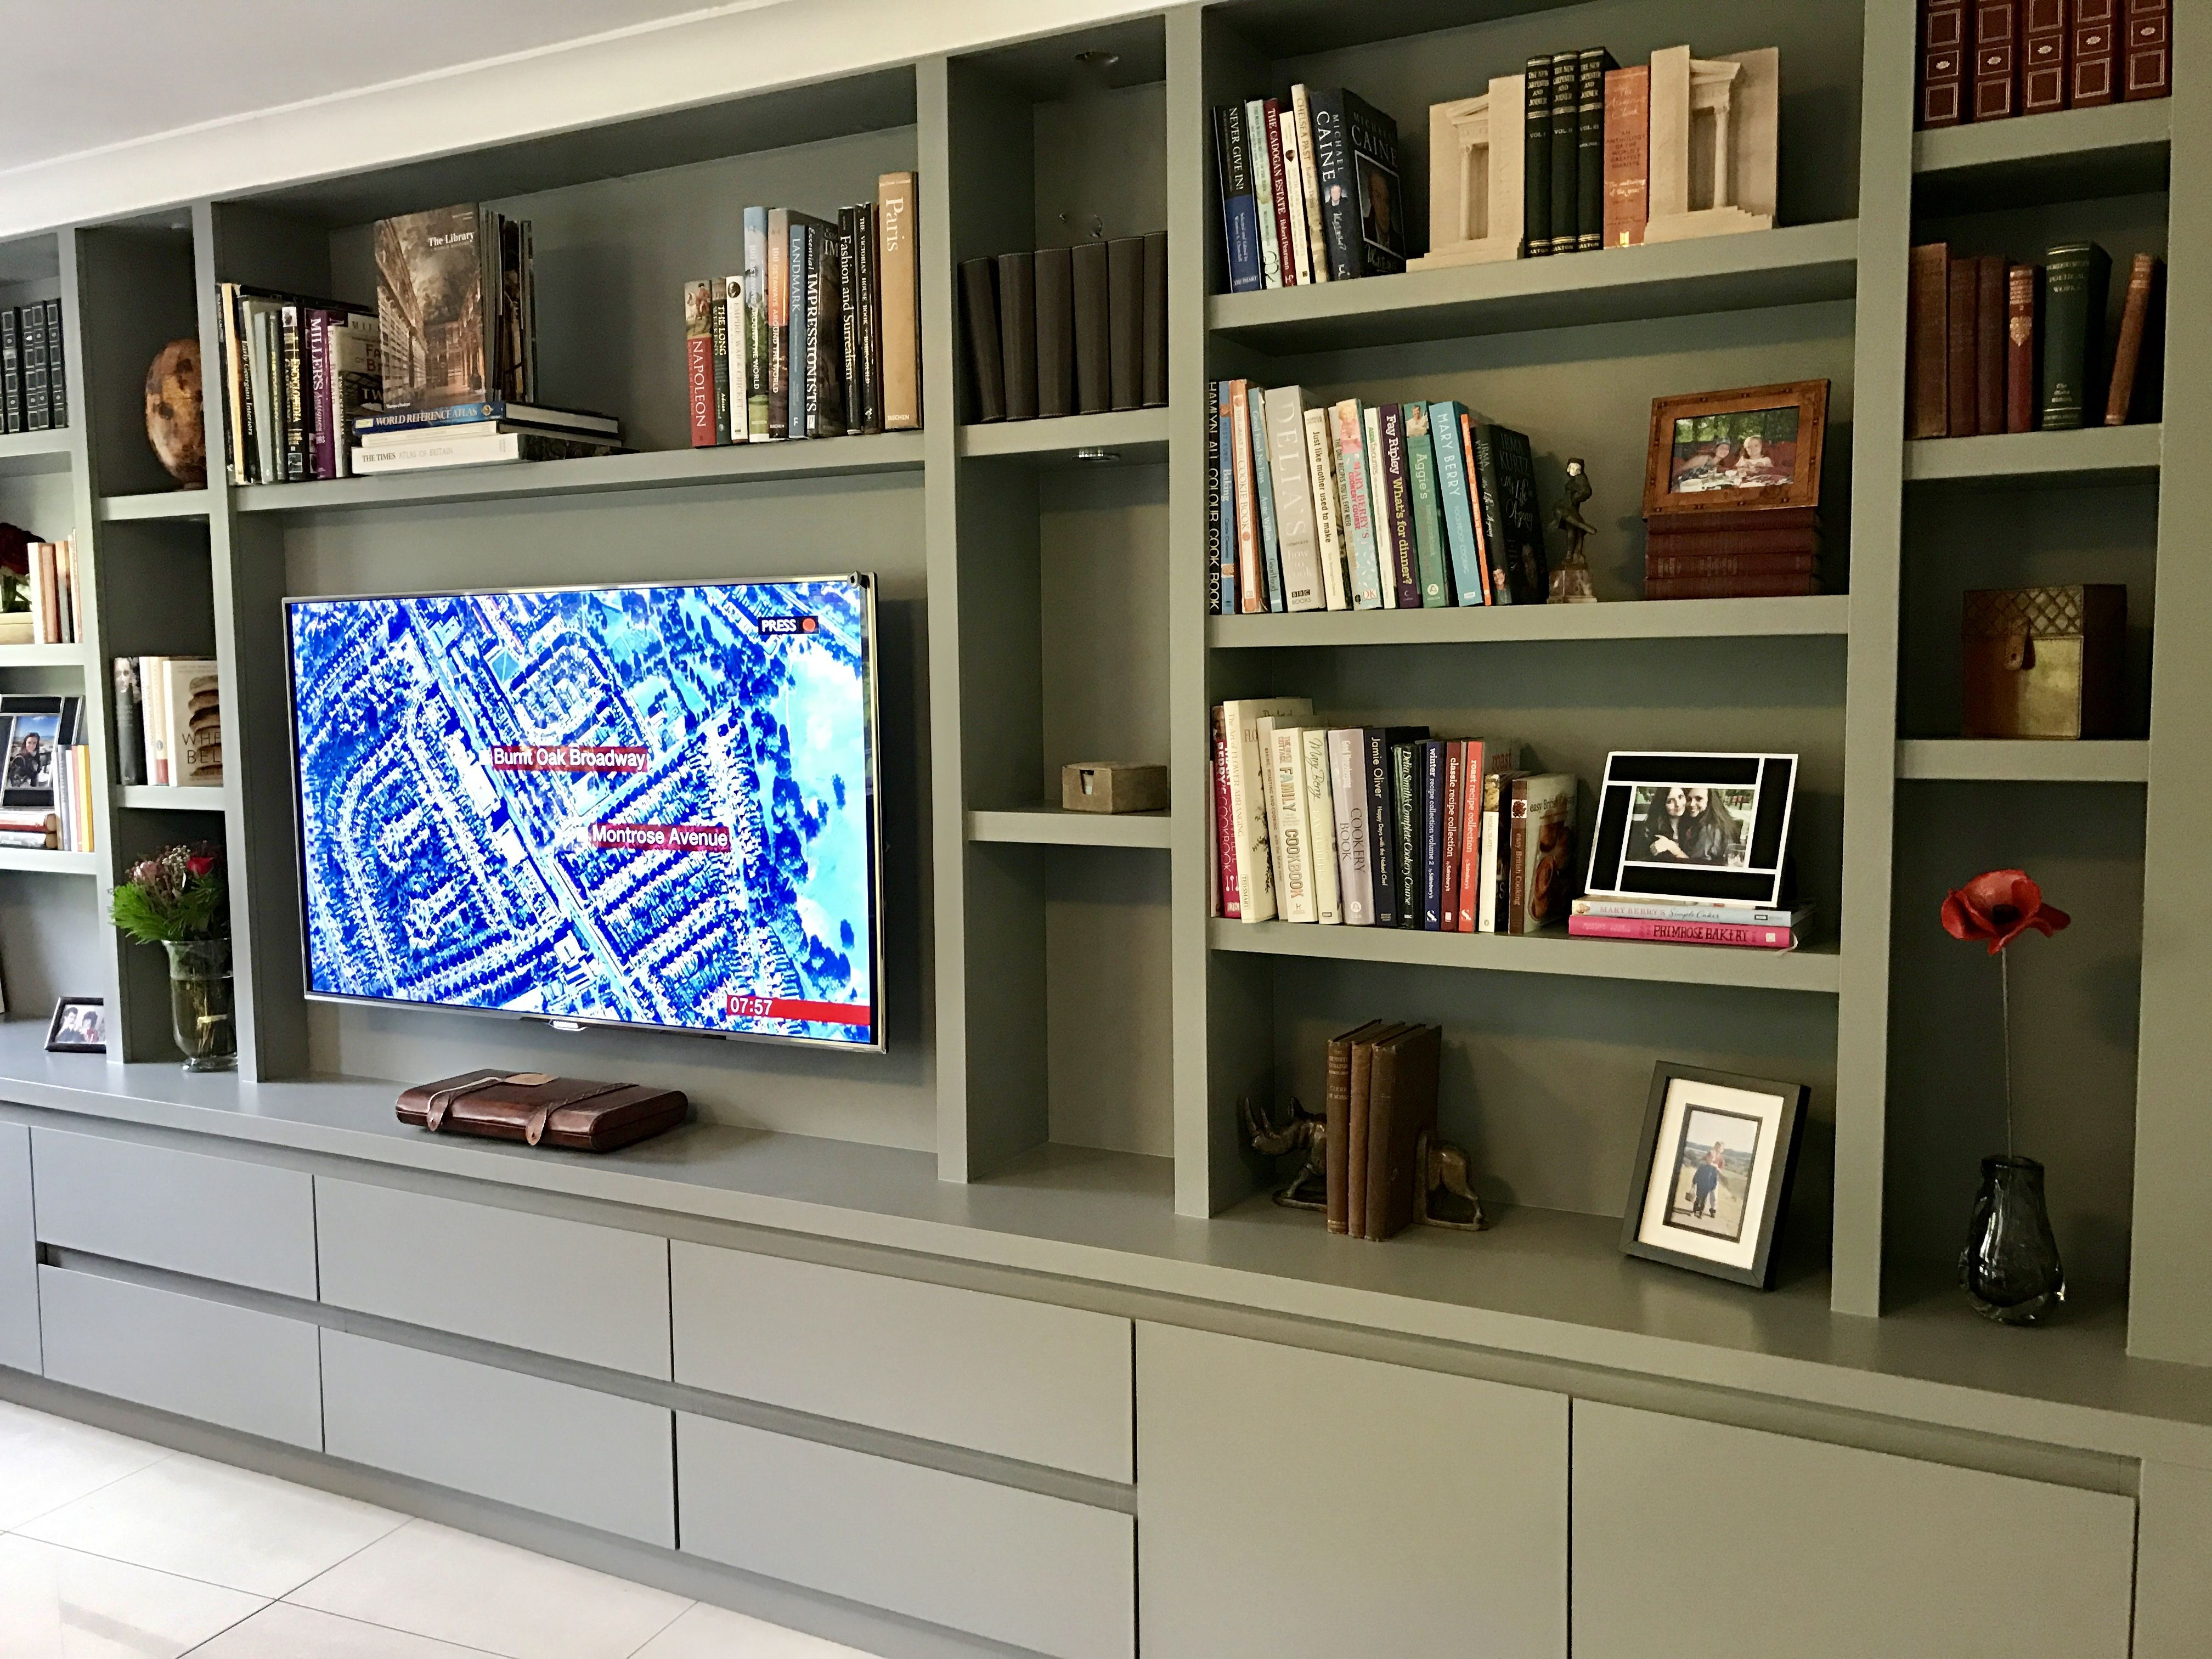 Wall To Storage For Tv With Sky And Digital Equipment D In Cupboards Below